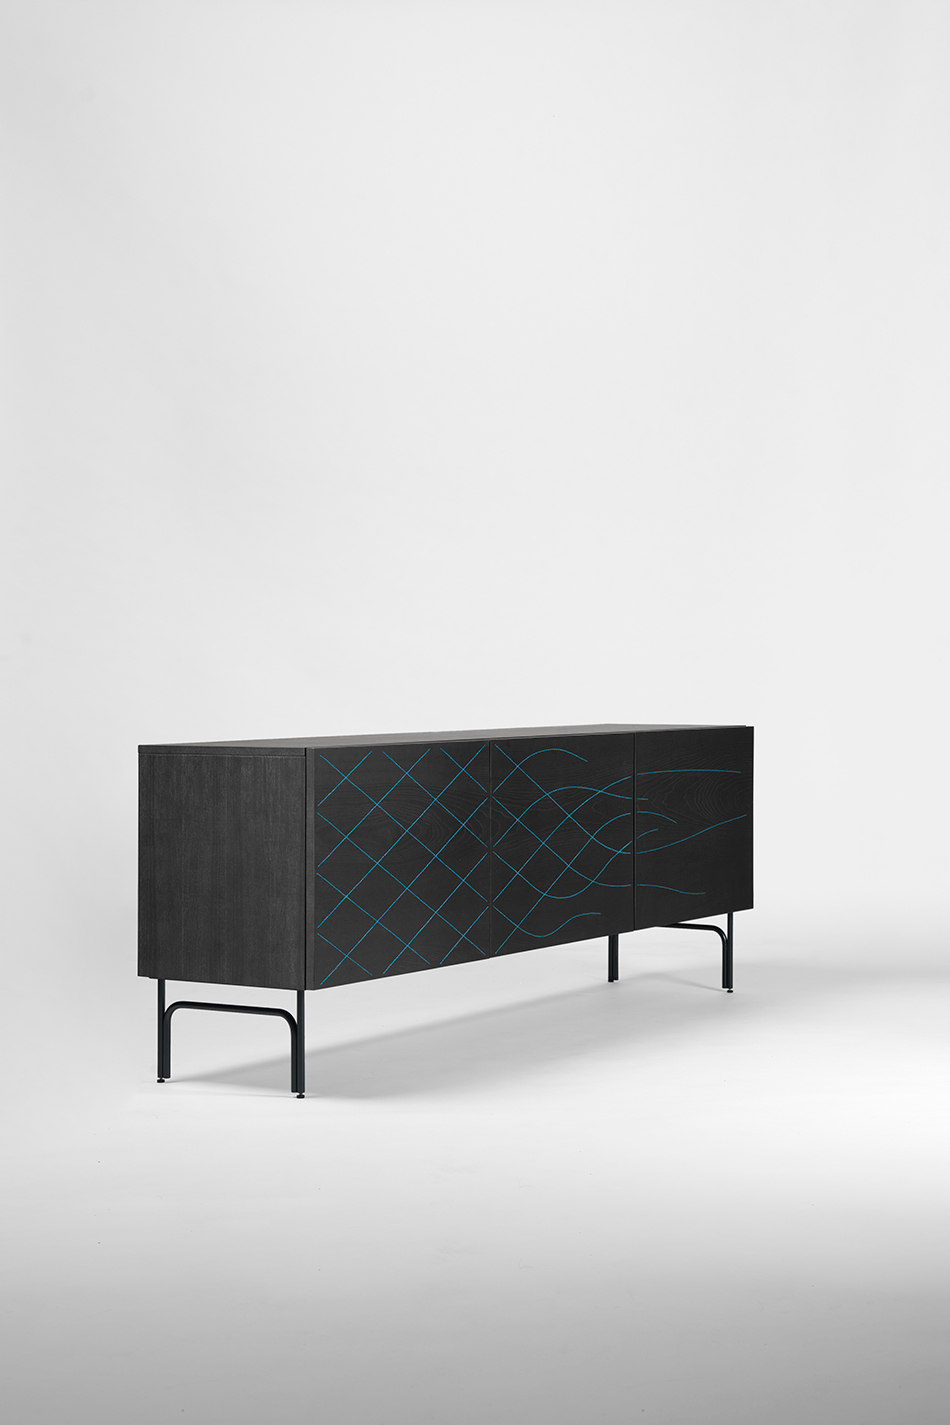 Couture cabinet by Färg & Blanche for BD Barcelona at Salone del Mobile 2017 | Yellowtrace